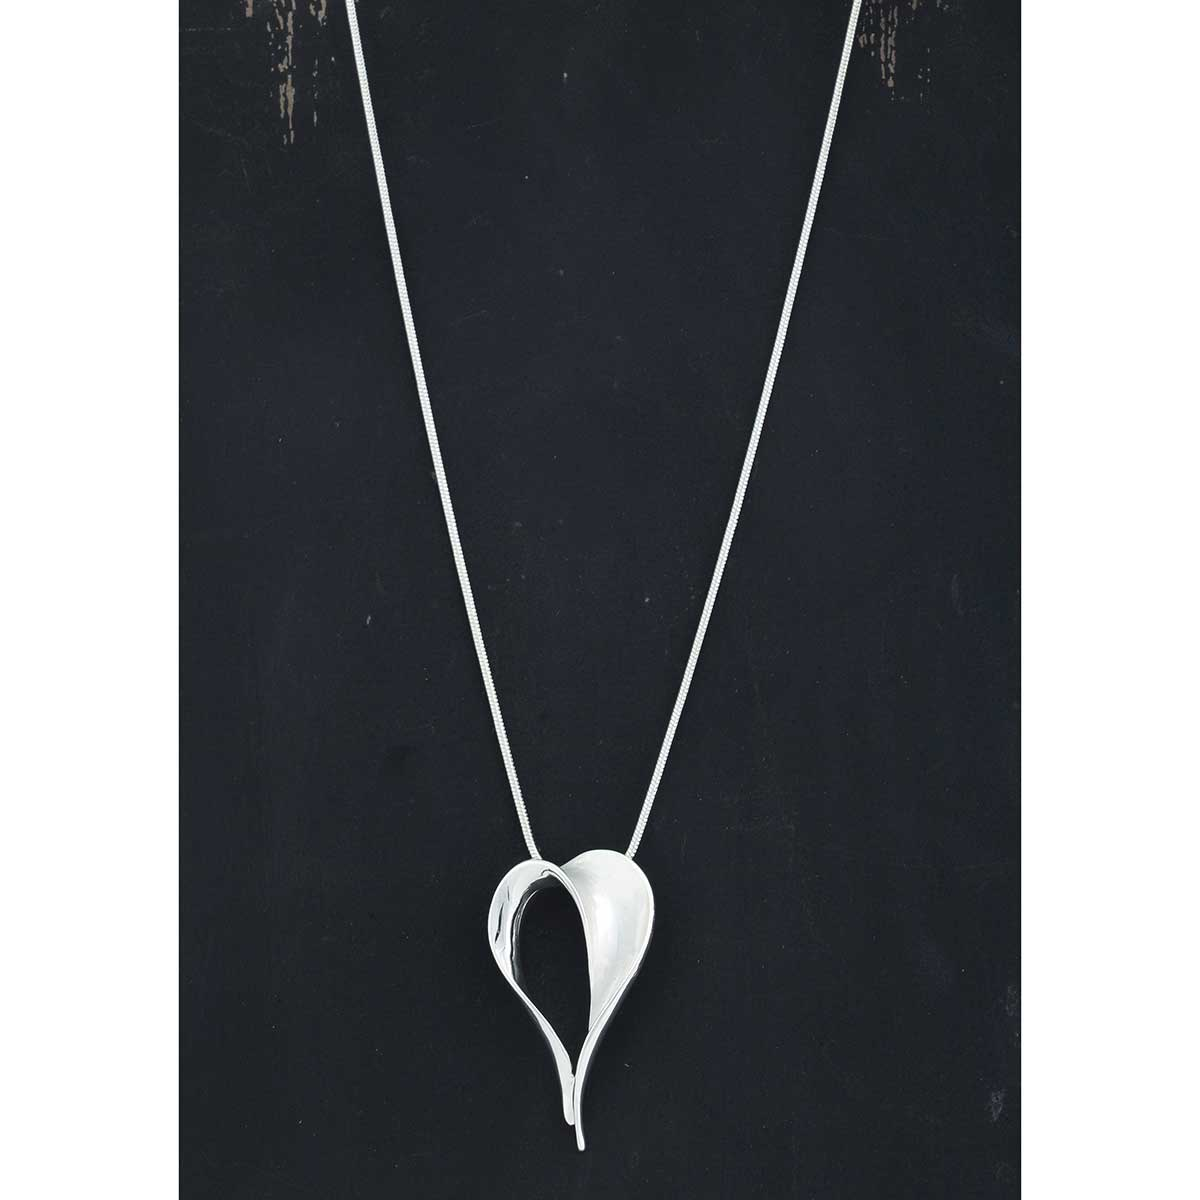 "Satin Silver 1.25""x2"" Heart on Chain Necklace 16""-19"""